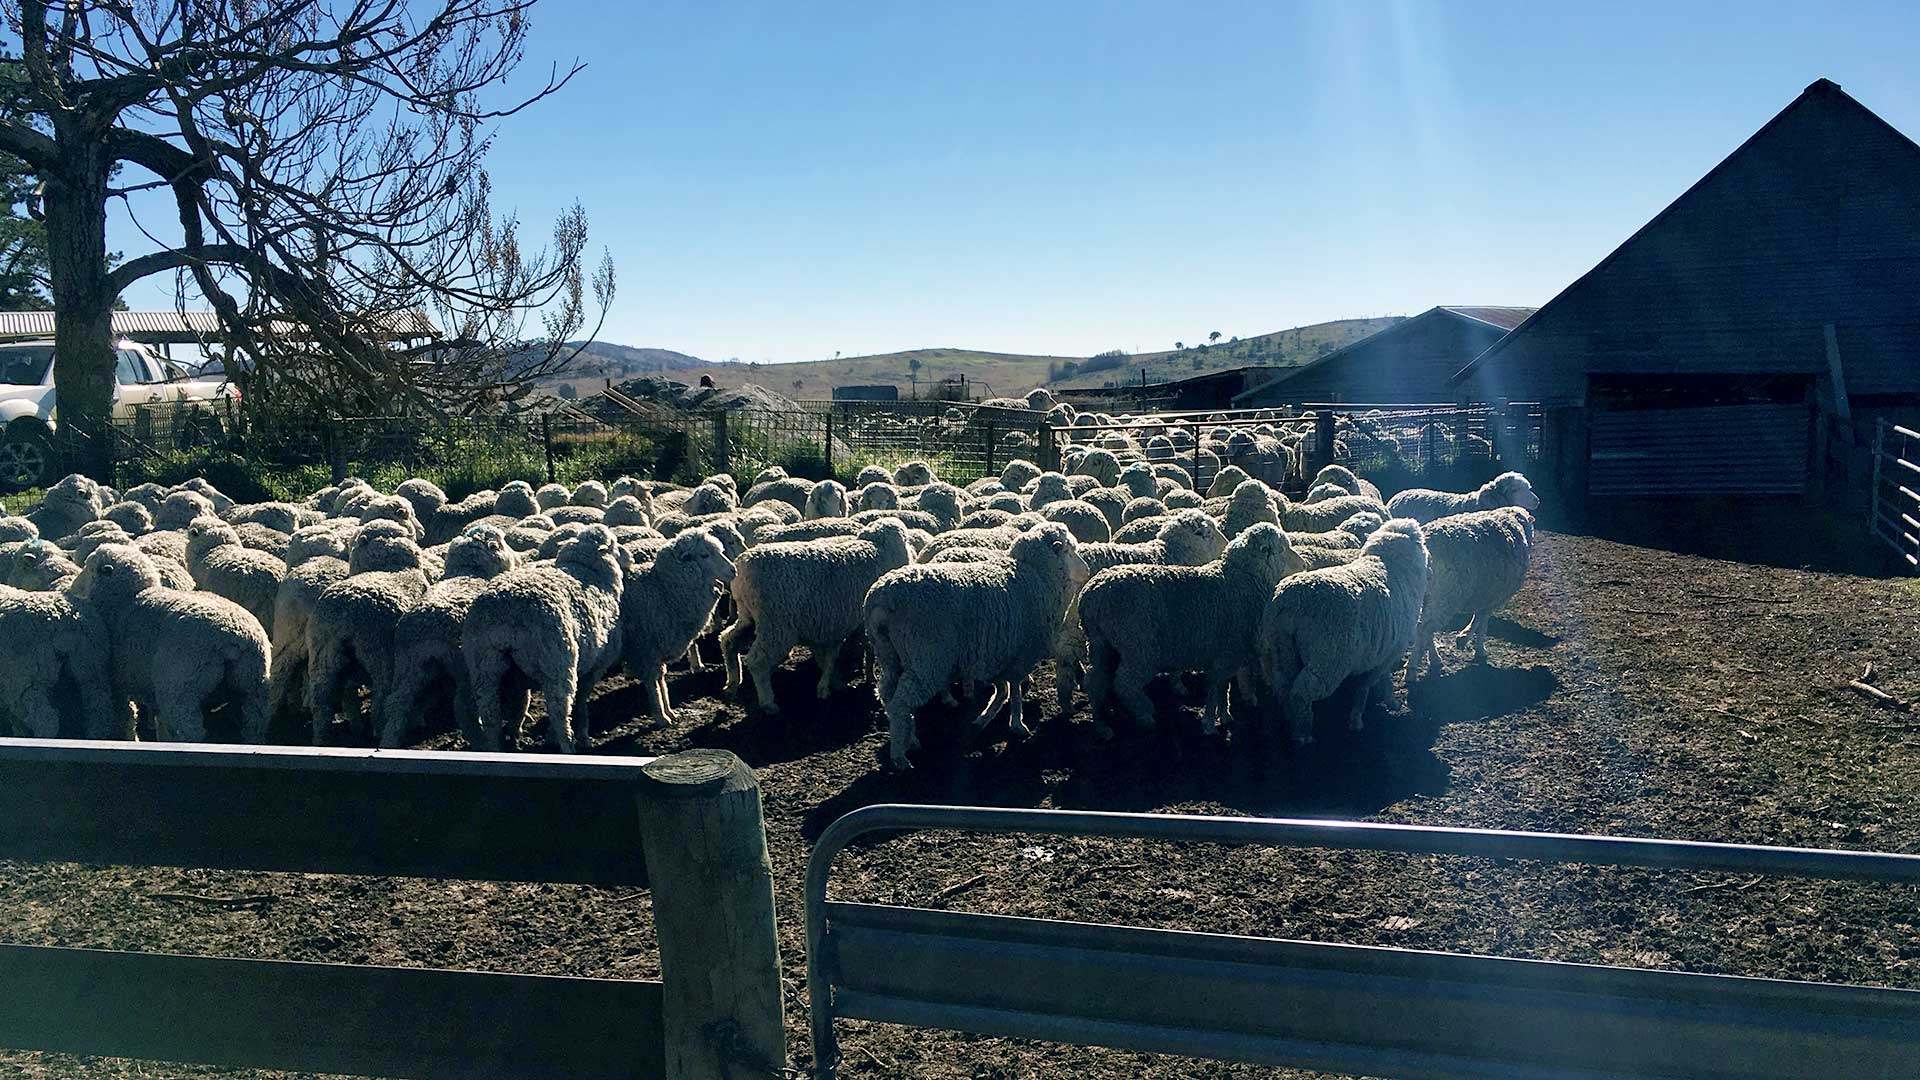 New England - Sheep in a Muddy Paddock | Merino Superior Sires